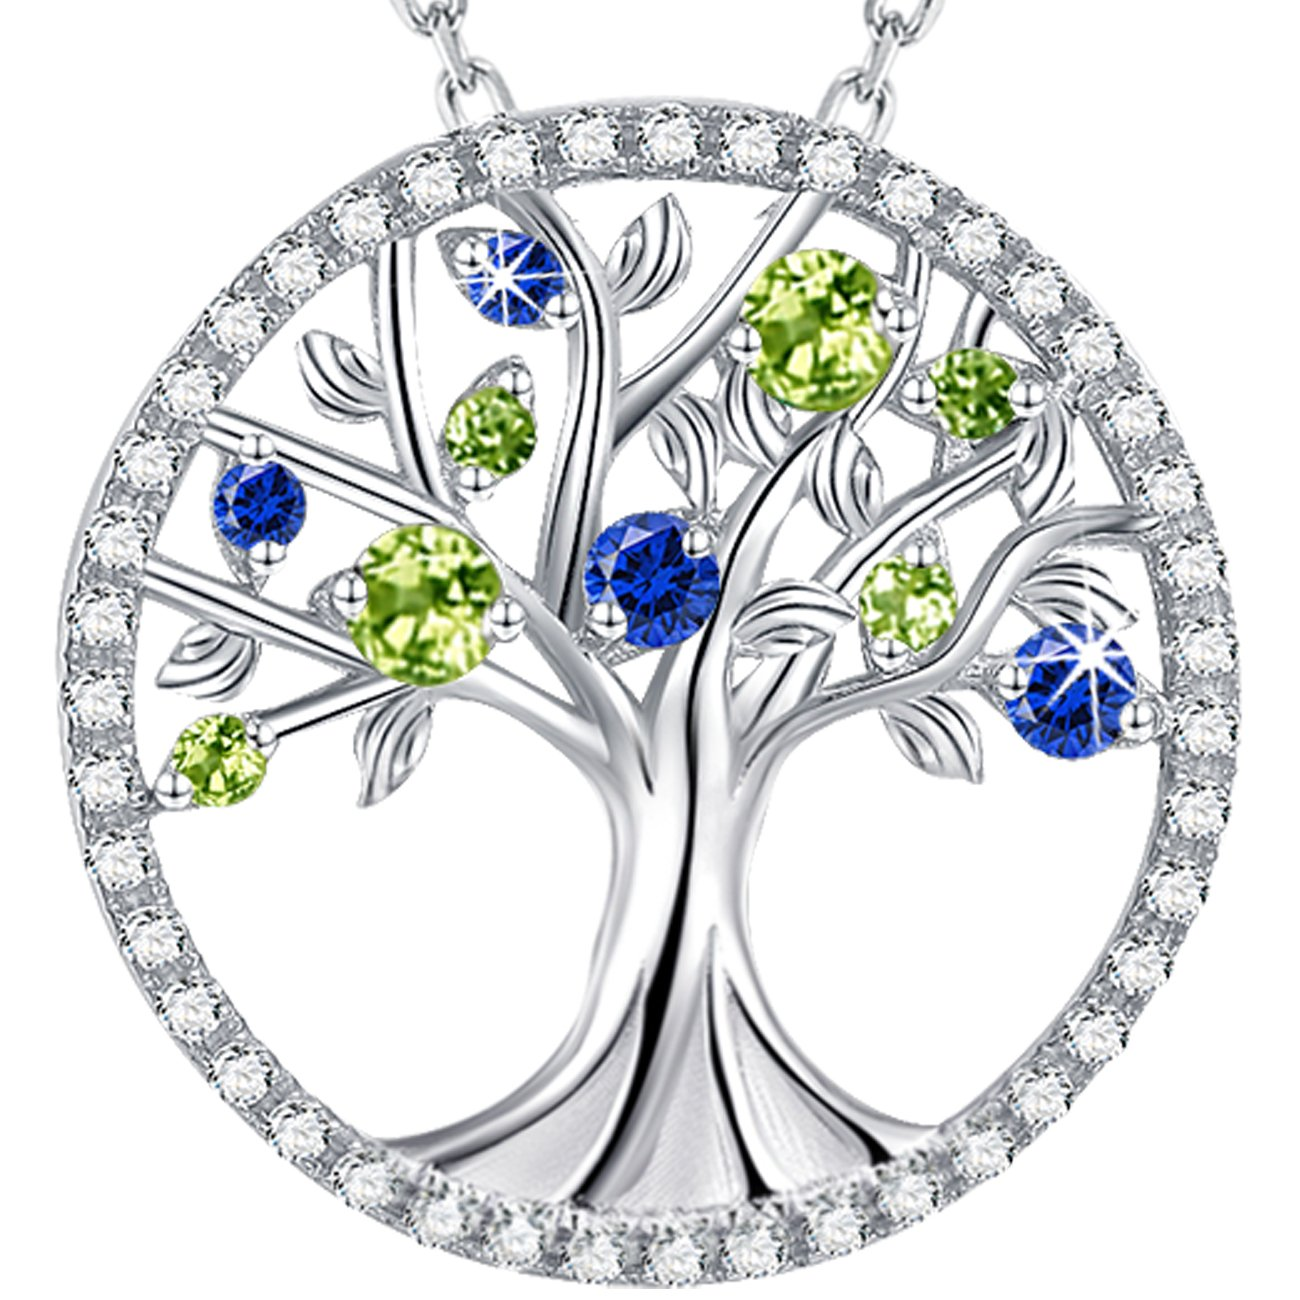 Elda&Co The Tree of Life Necklace September Birthstone Created Sapphire and Created Peridot Pendant Jewelry Sterling Silver Birthday for Her for Family